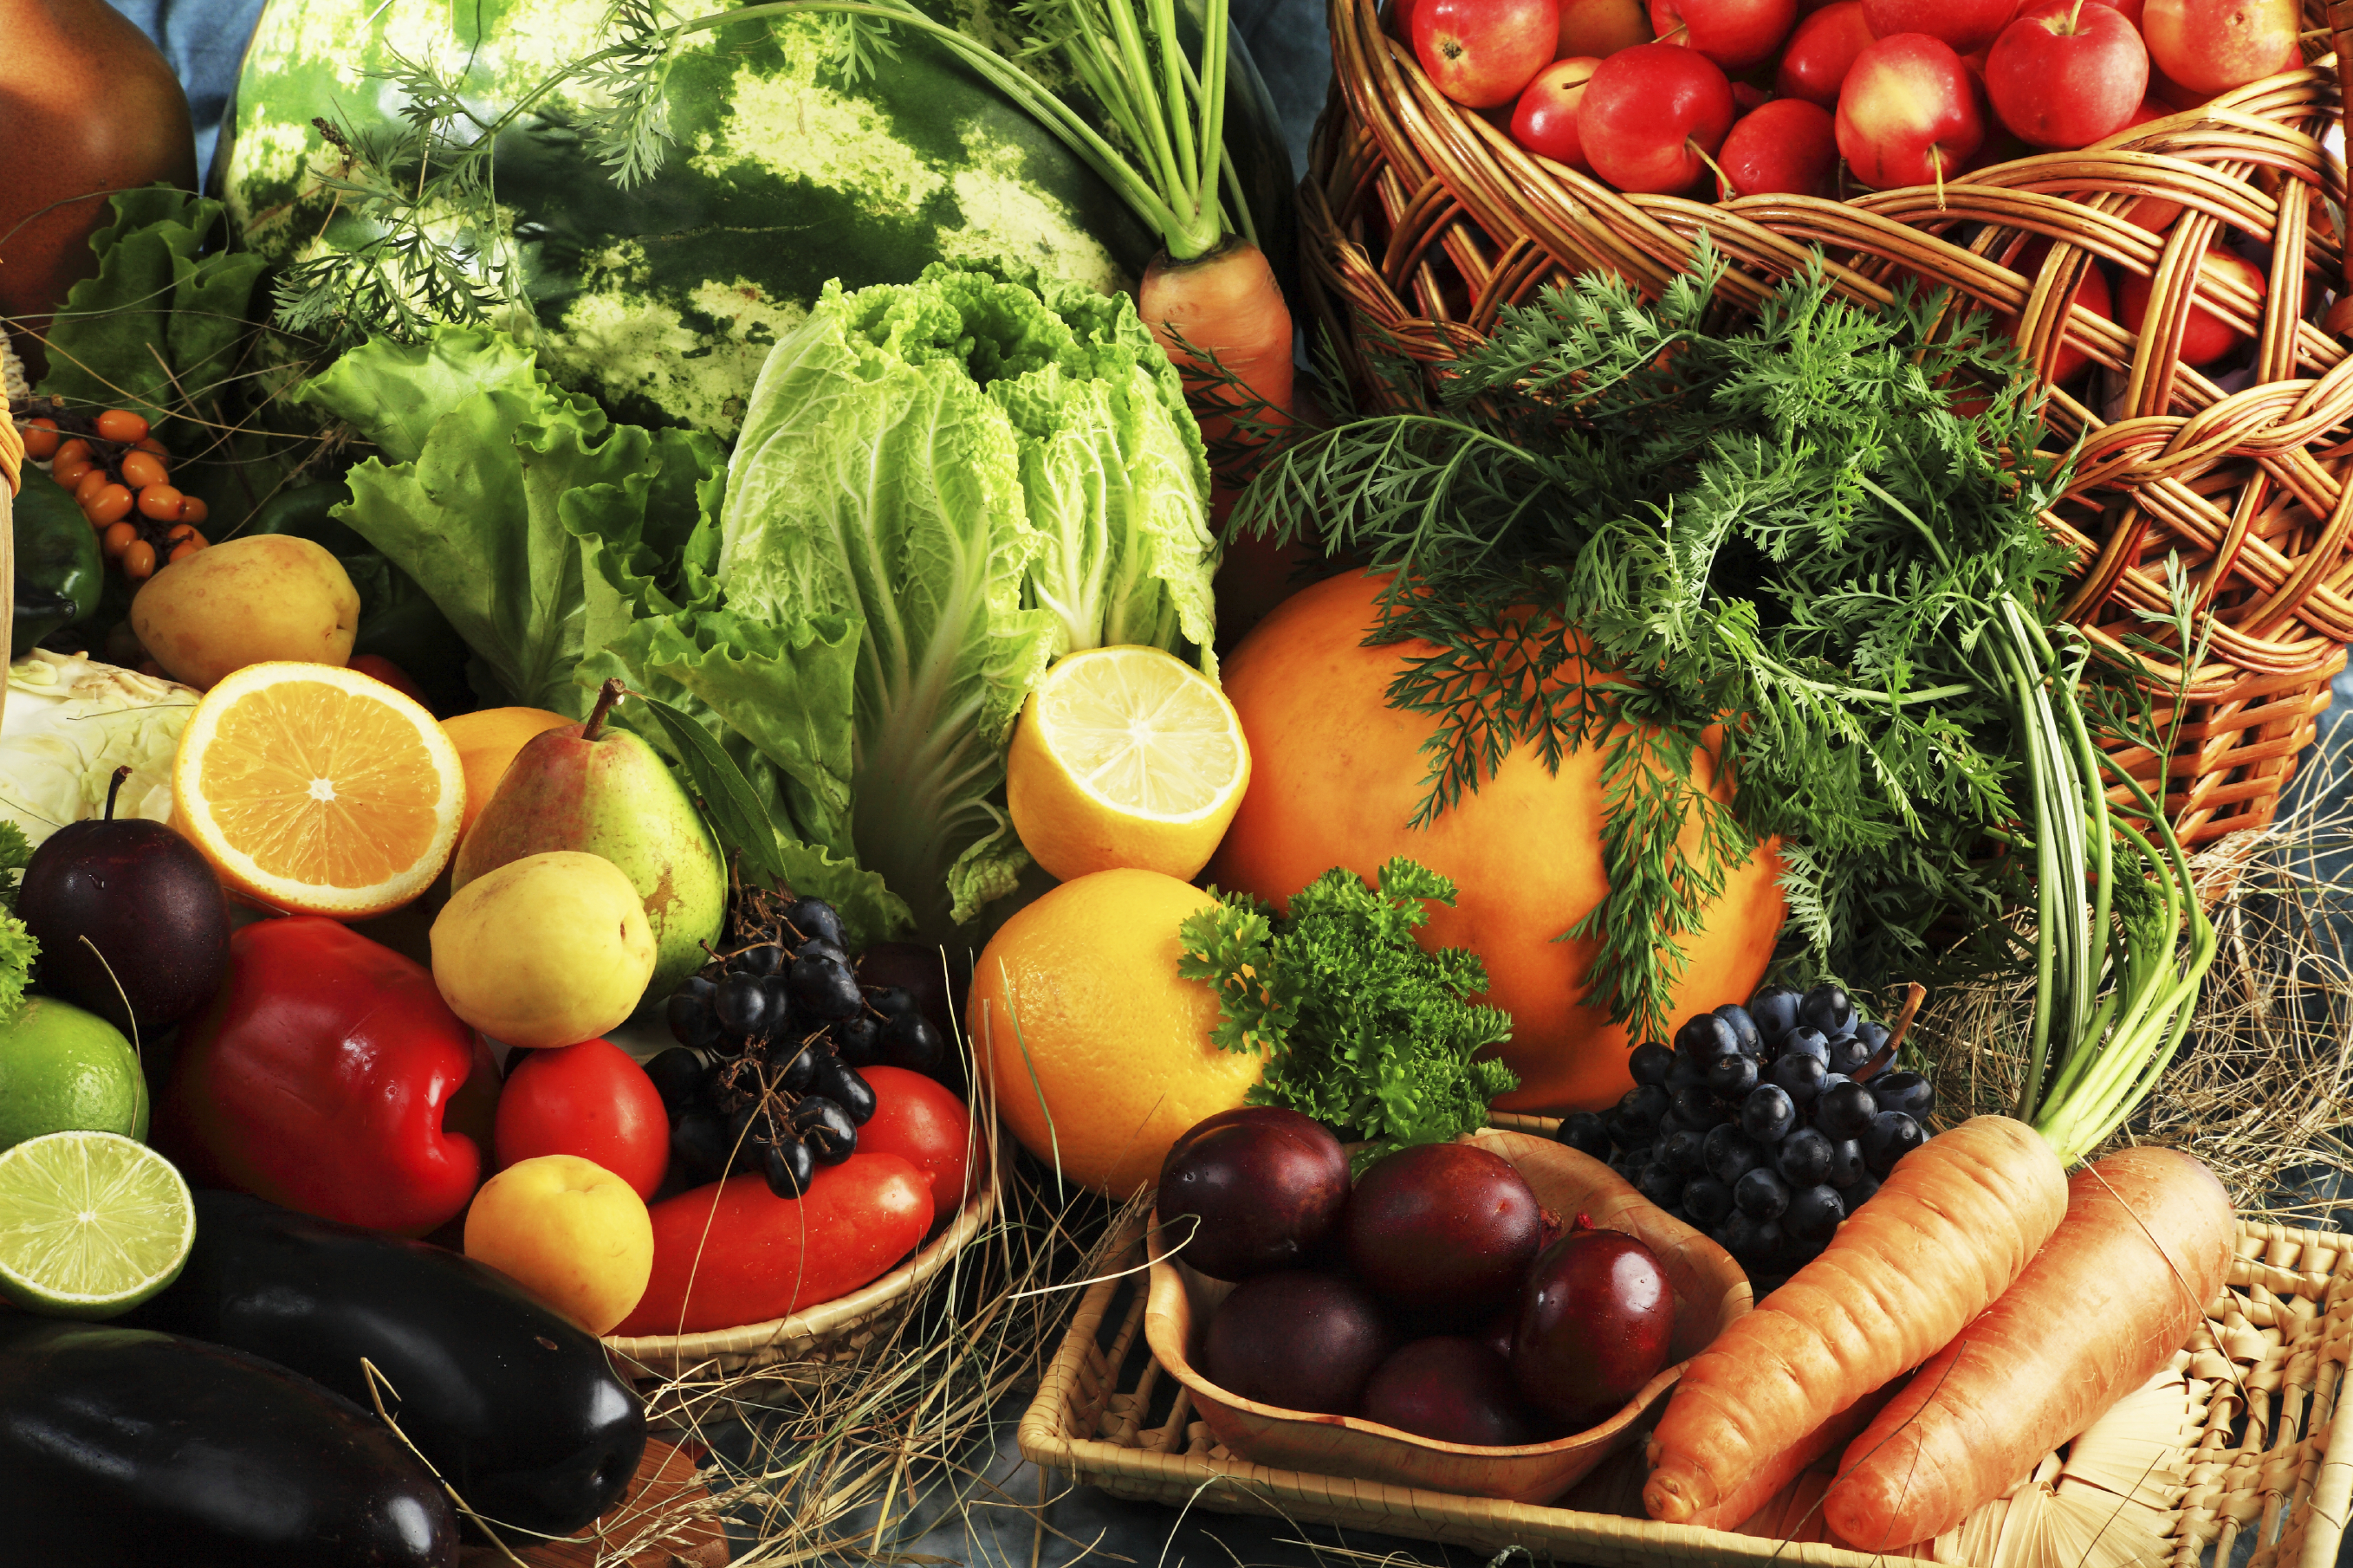 Vegetarian Diet May Lower Colon Cancer Risk